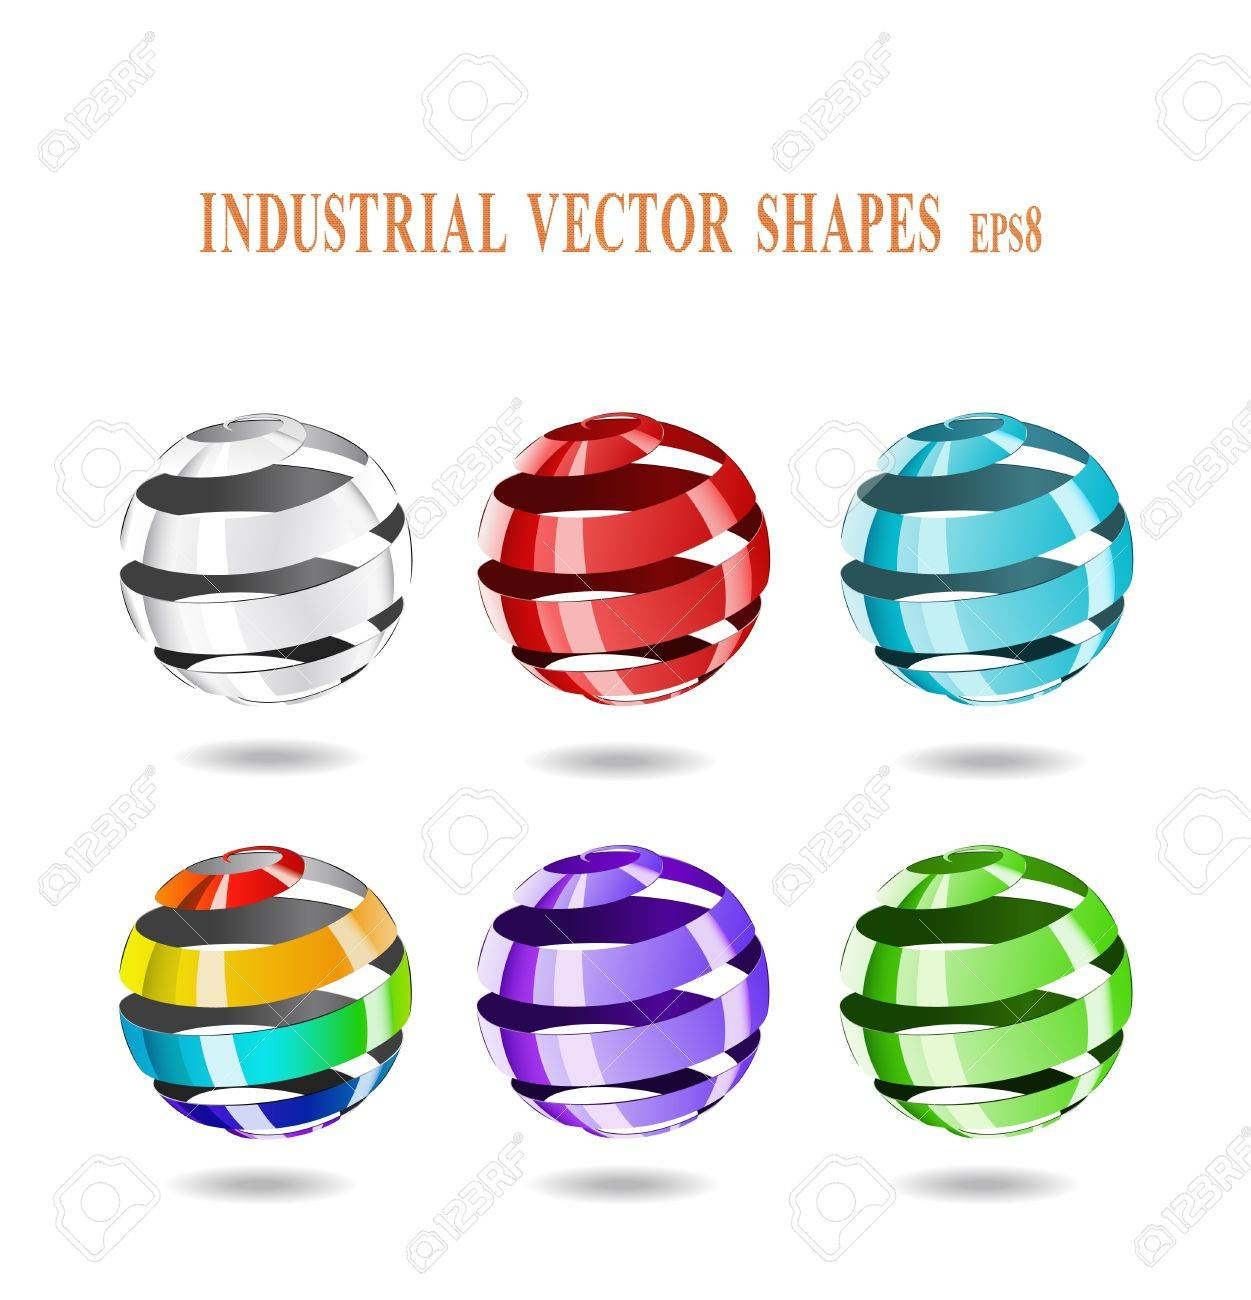 Multi-colored balls of steel strip are shown in the image. Stock Vector - 11451149